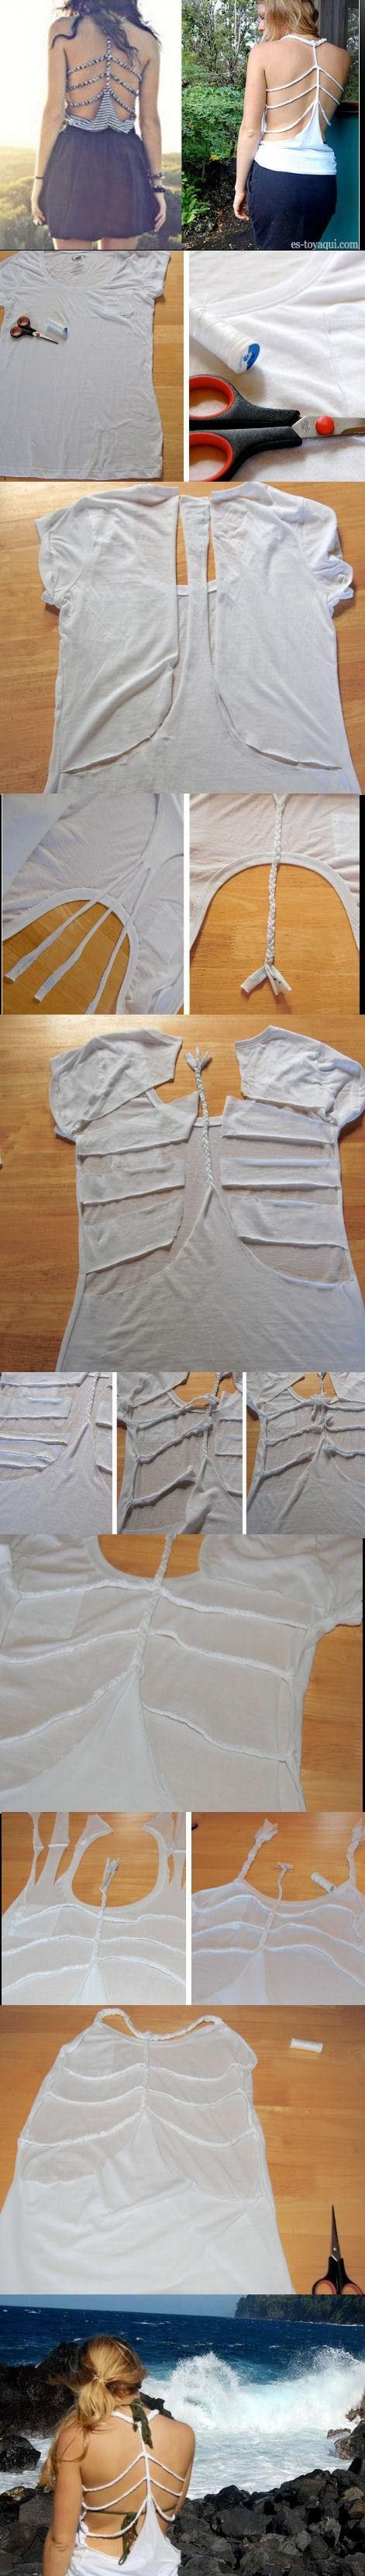 braided shirt how to